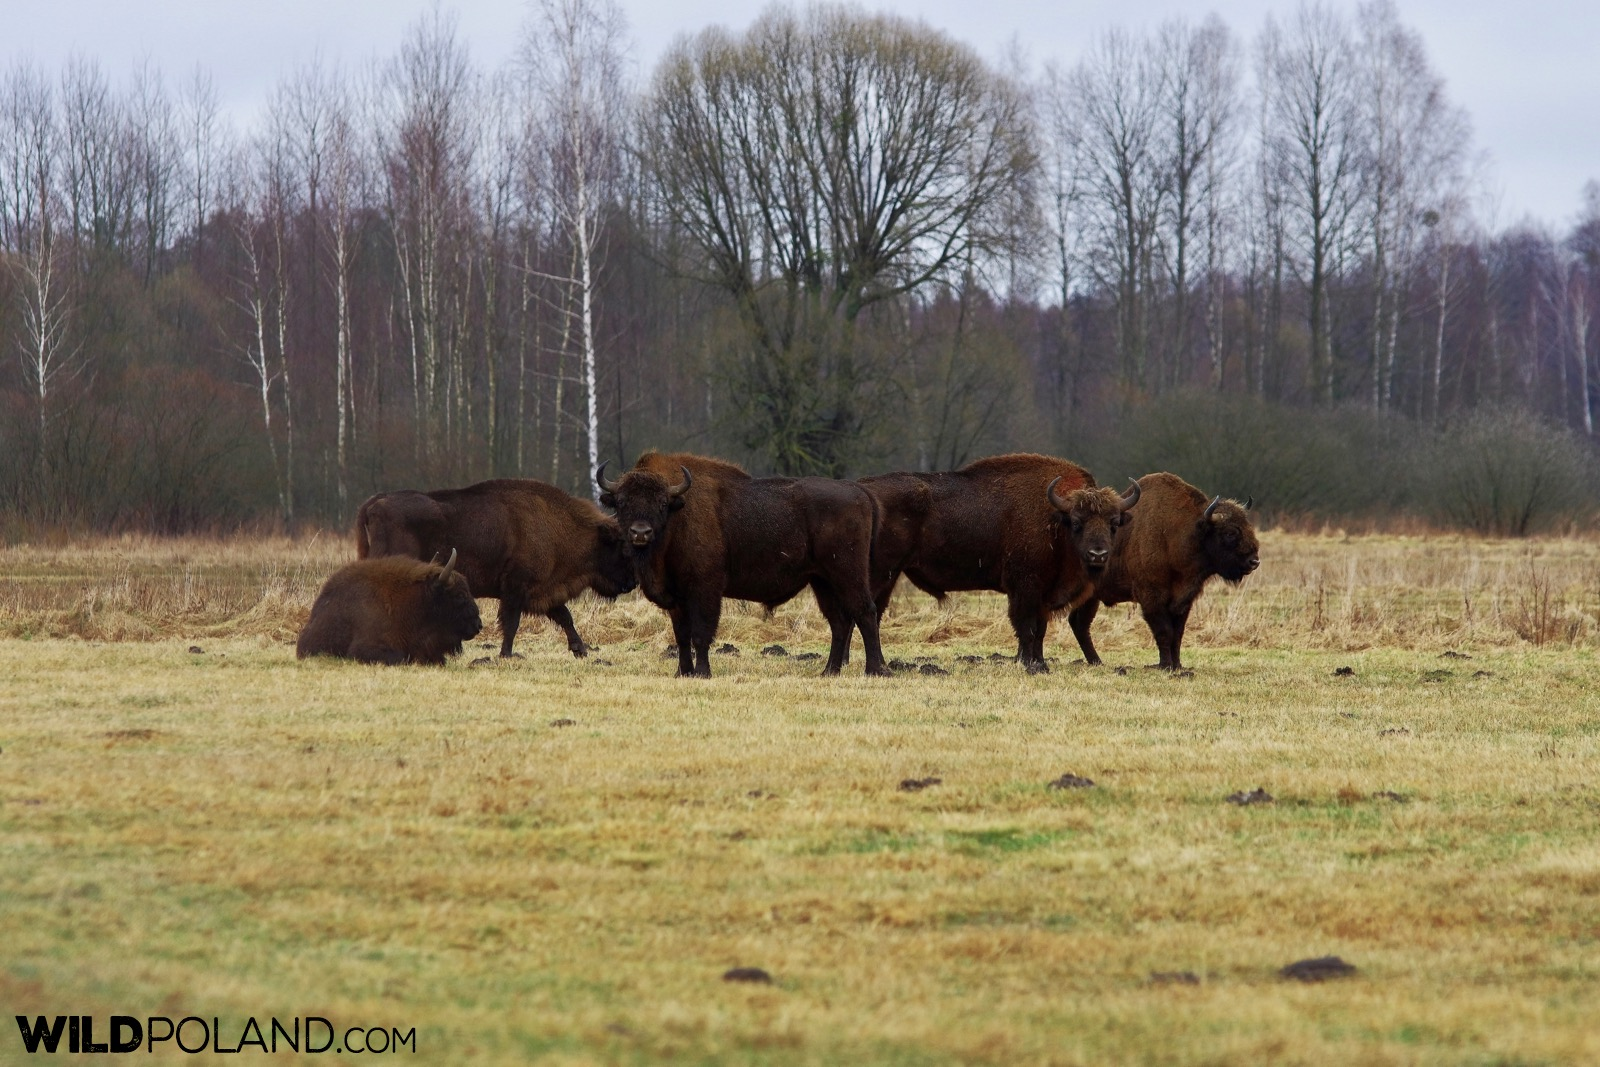 Small group of european bison, Białowieża Forest, photo by Andrzej Petryna